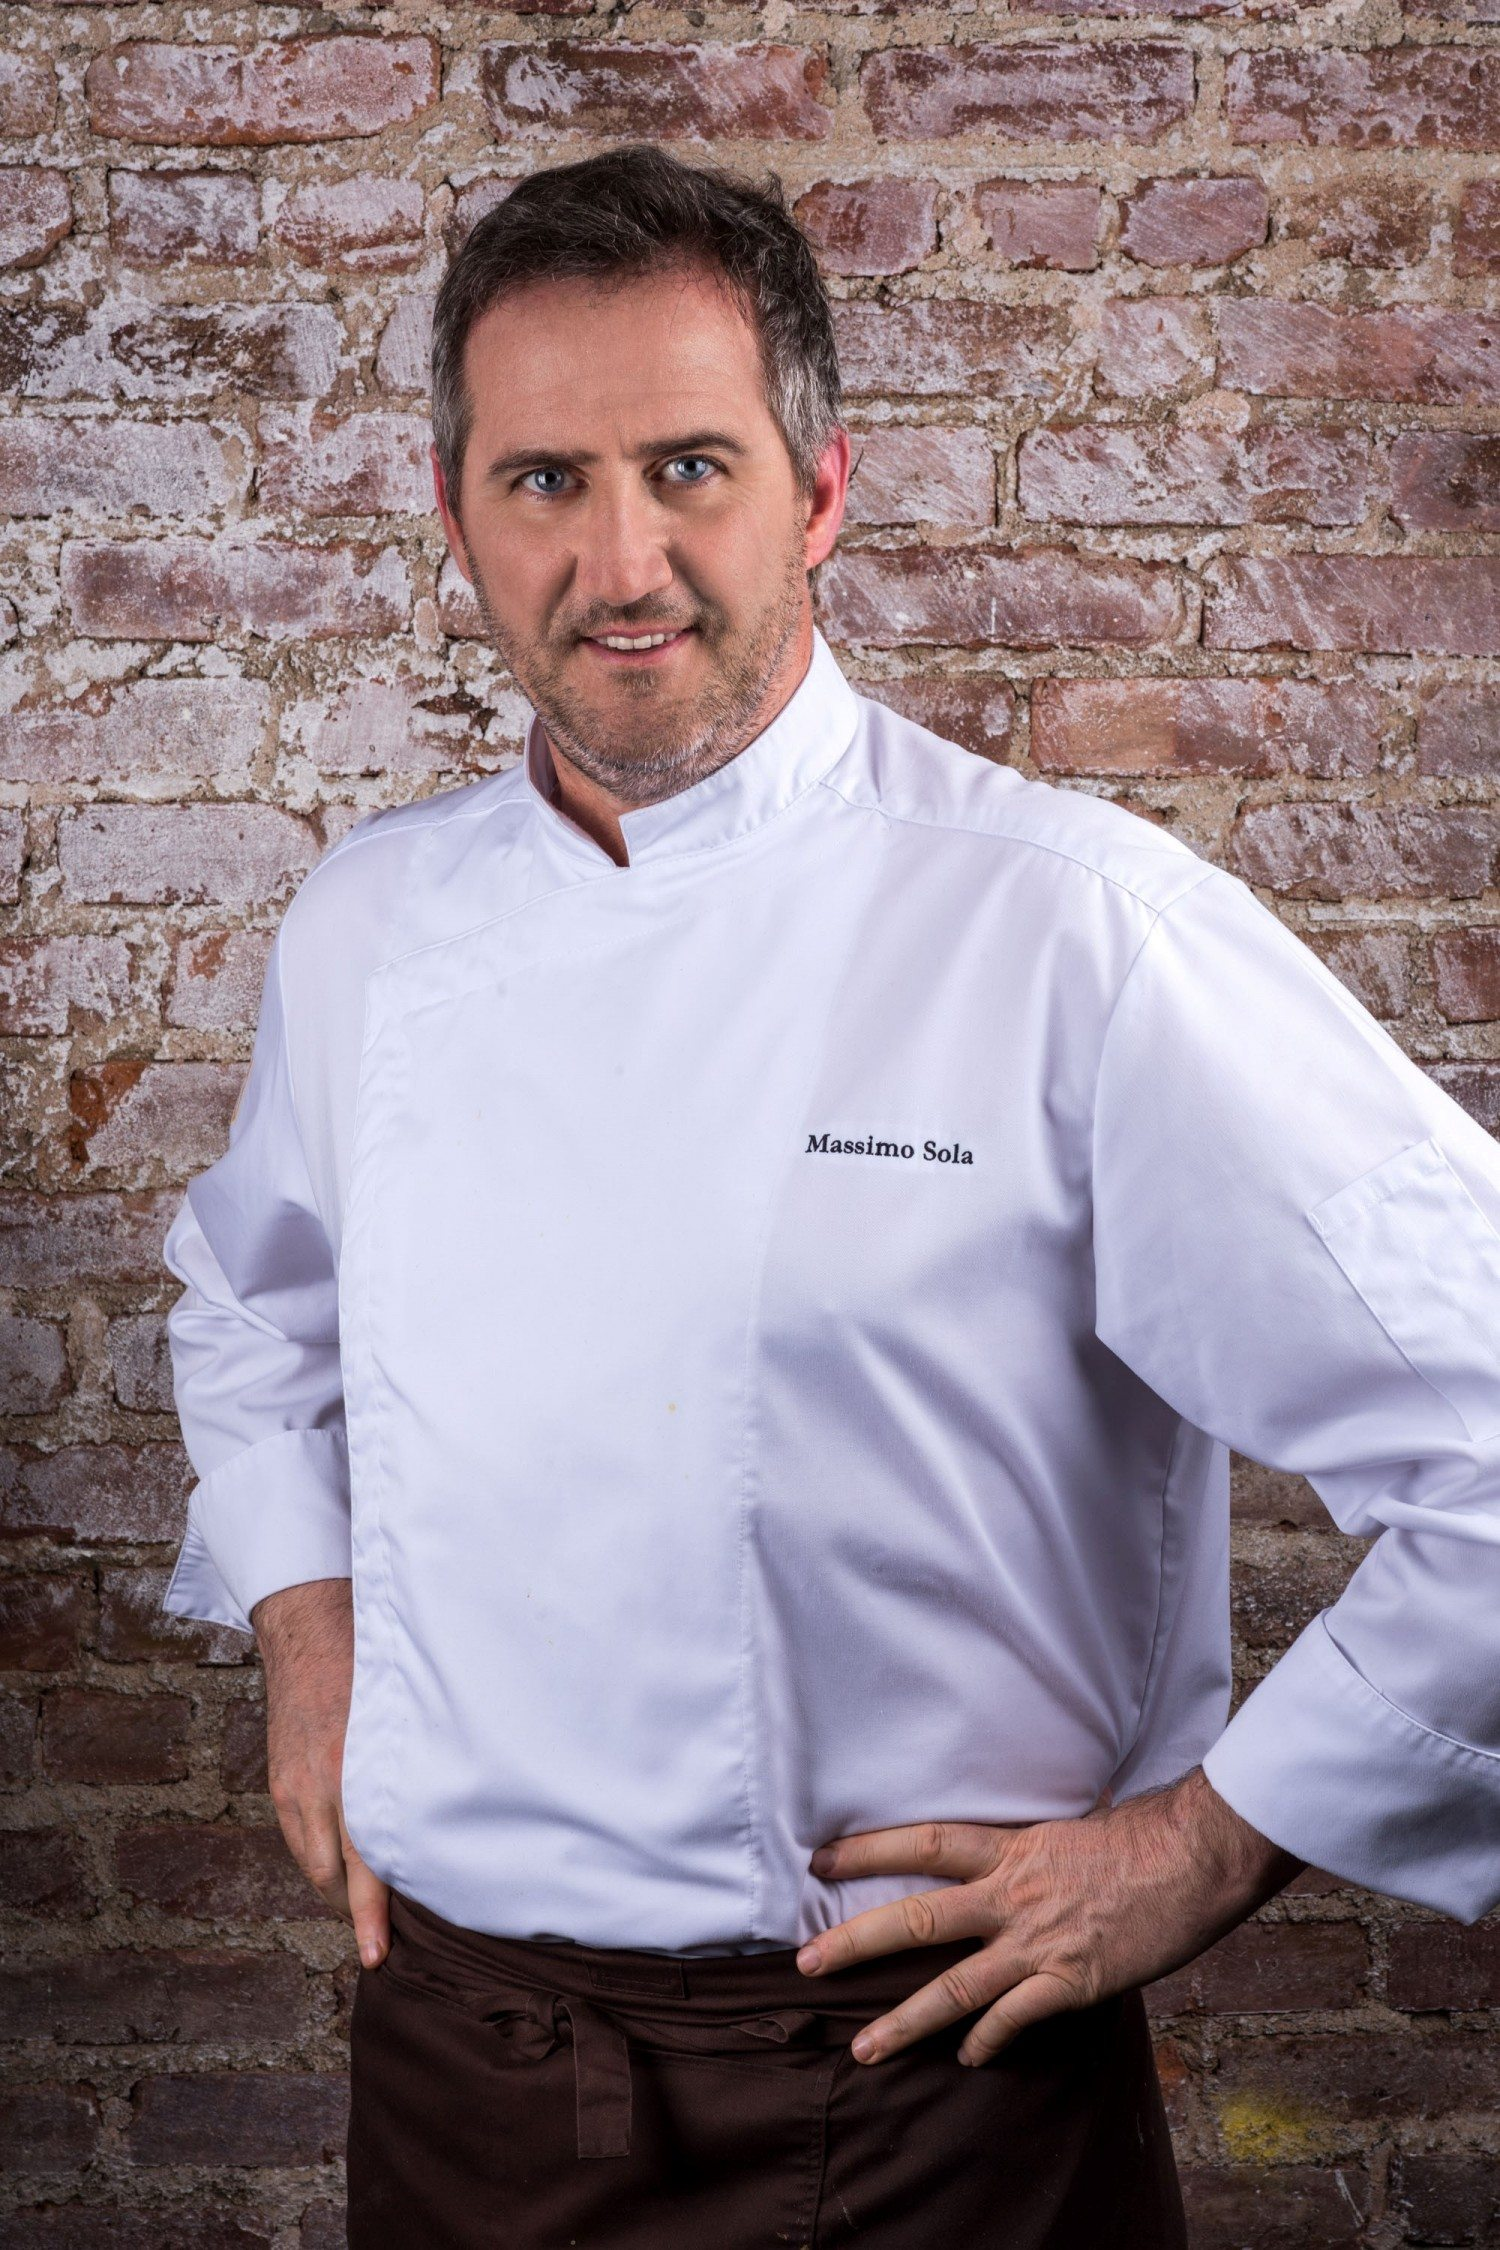 Chef Massimo Sola - photo by Enrique Shore